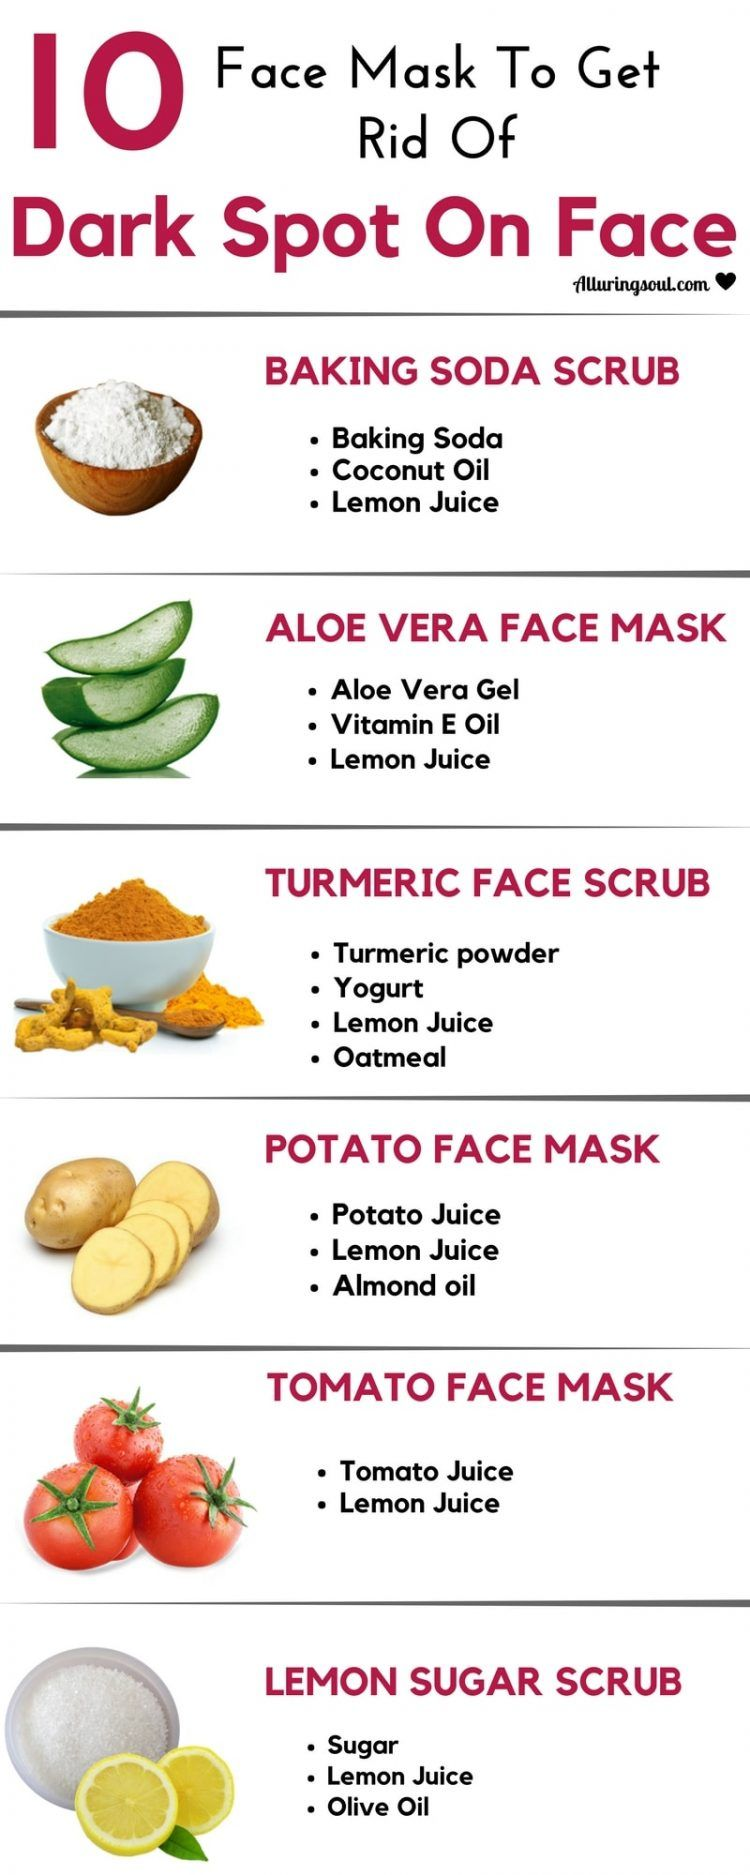 How To Remove Dark Spots On Face - 10 Home Remedies #skincare